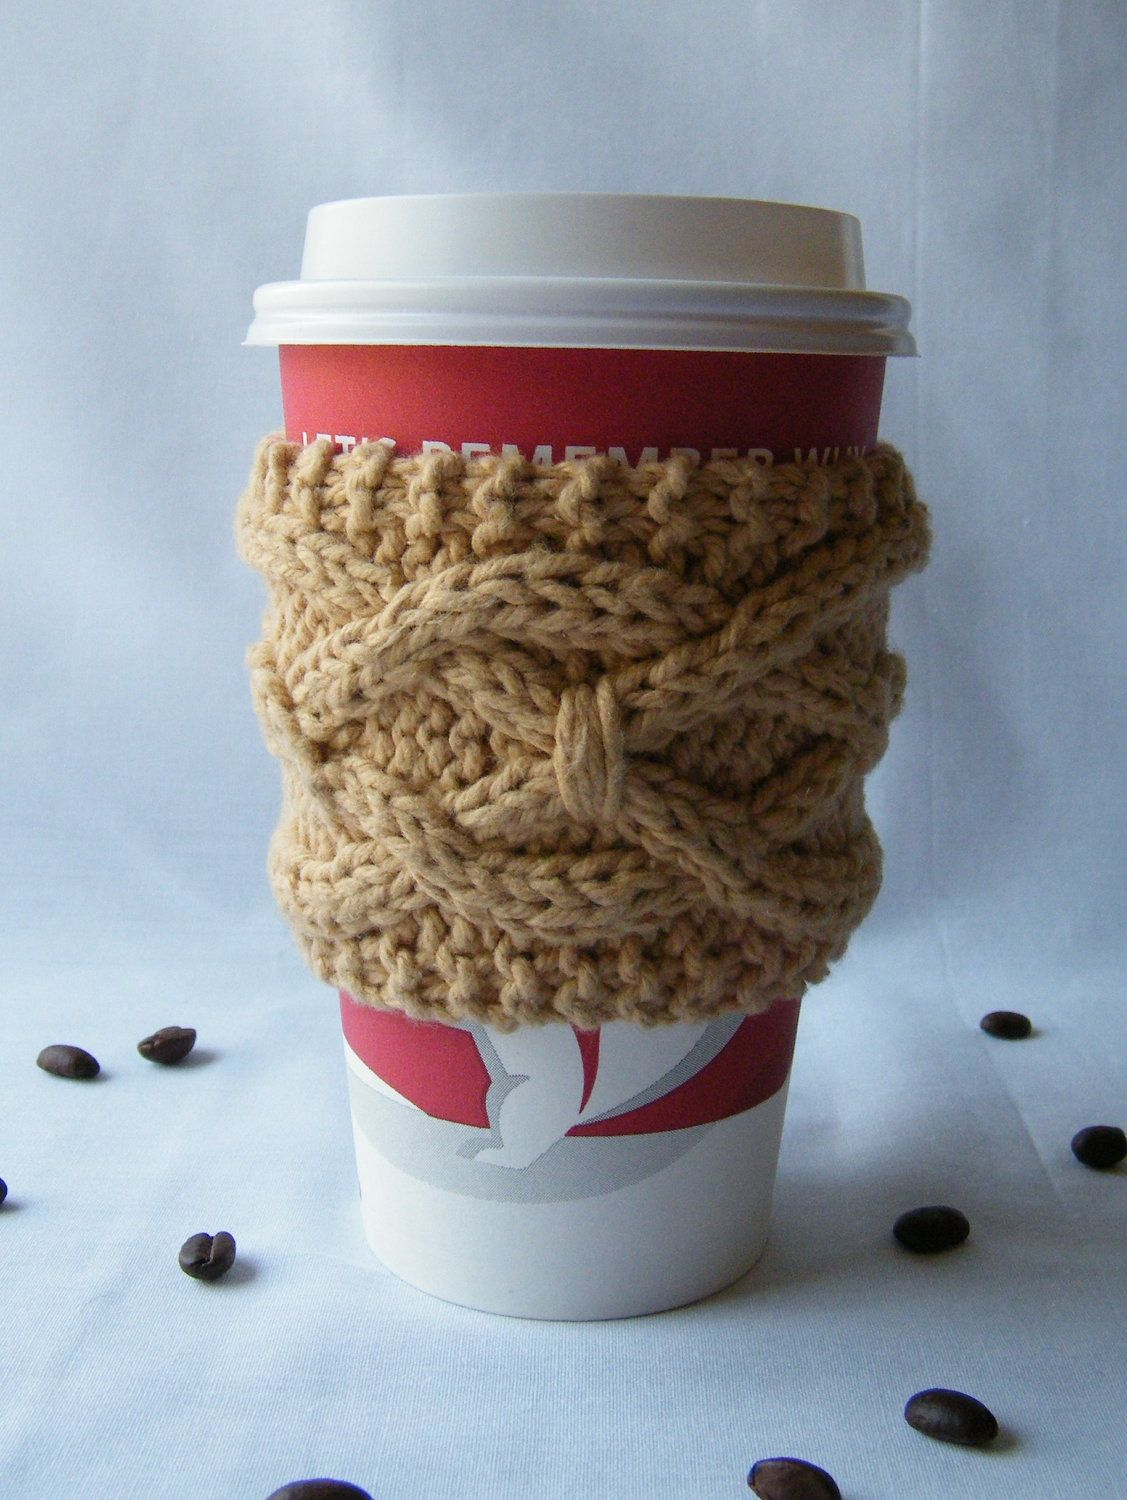 VIVIAN-figure out how to crochet this and sell them ...